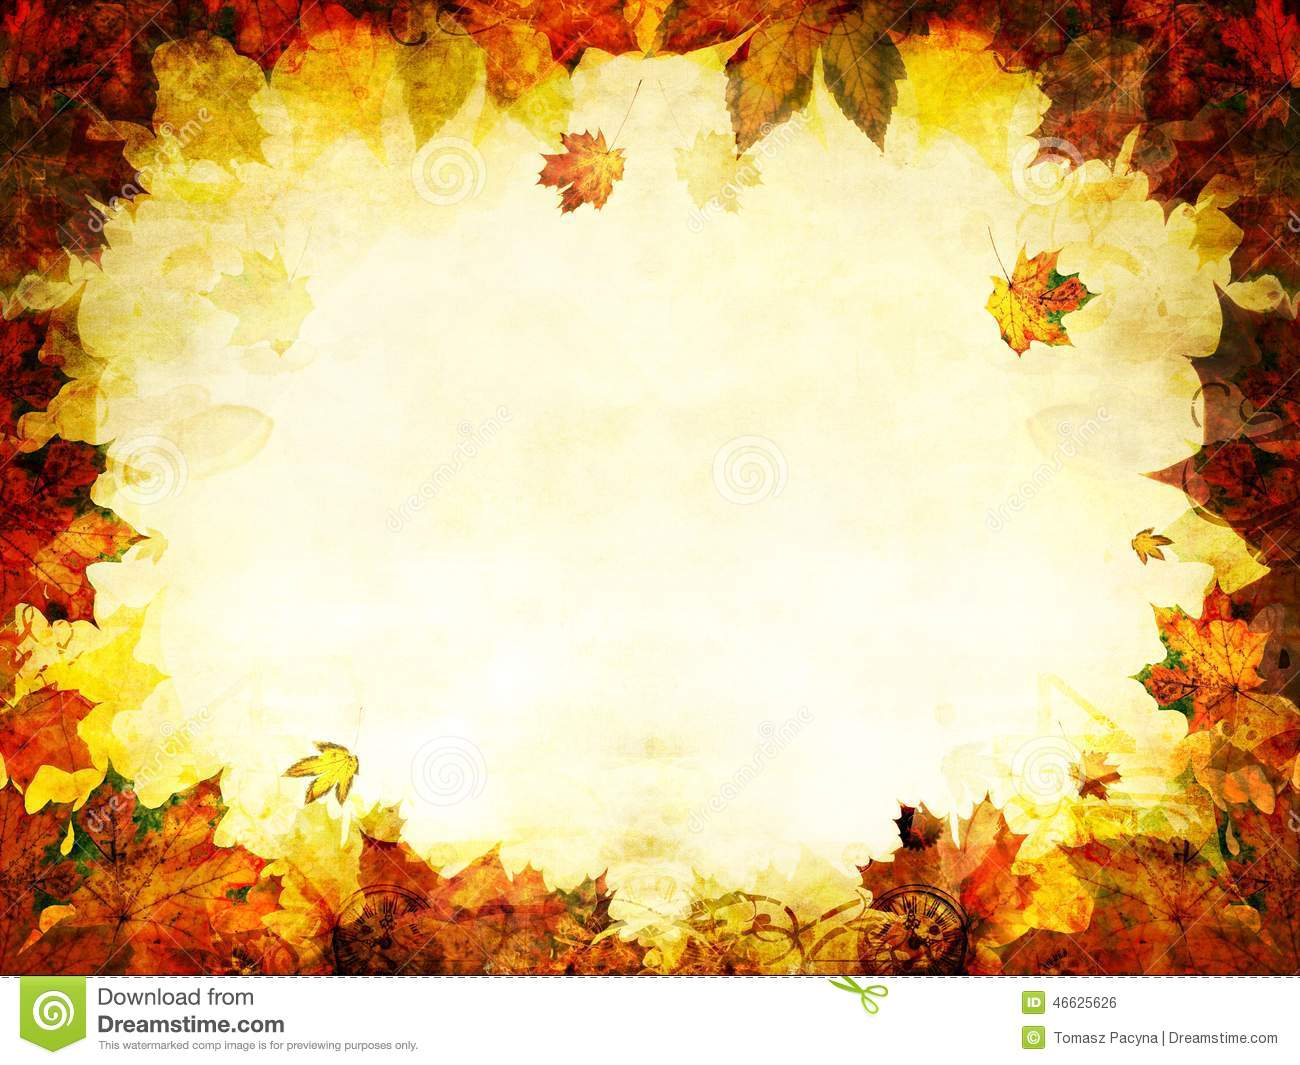 Hd Wallpaper Texture Fall Harvest Autumn Leaves Golden Frame Background Stock Photo Image